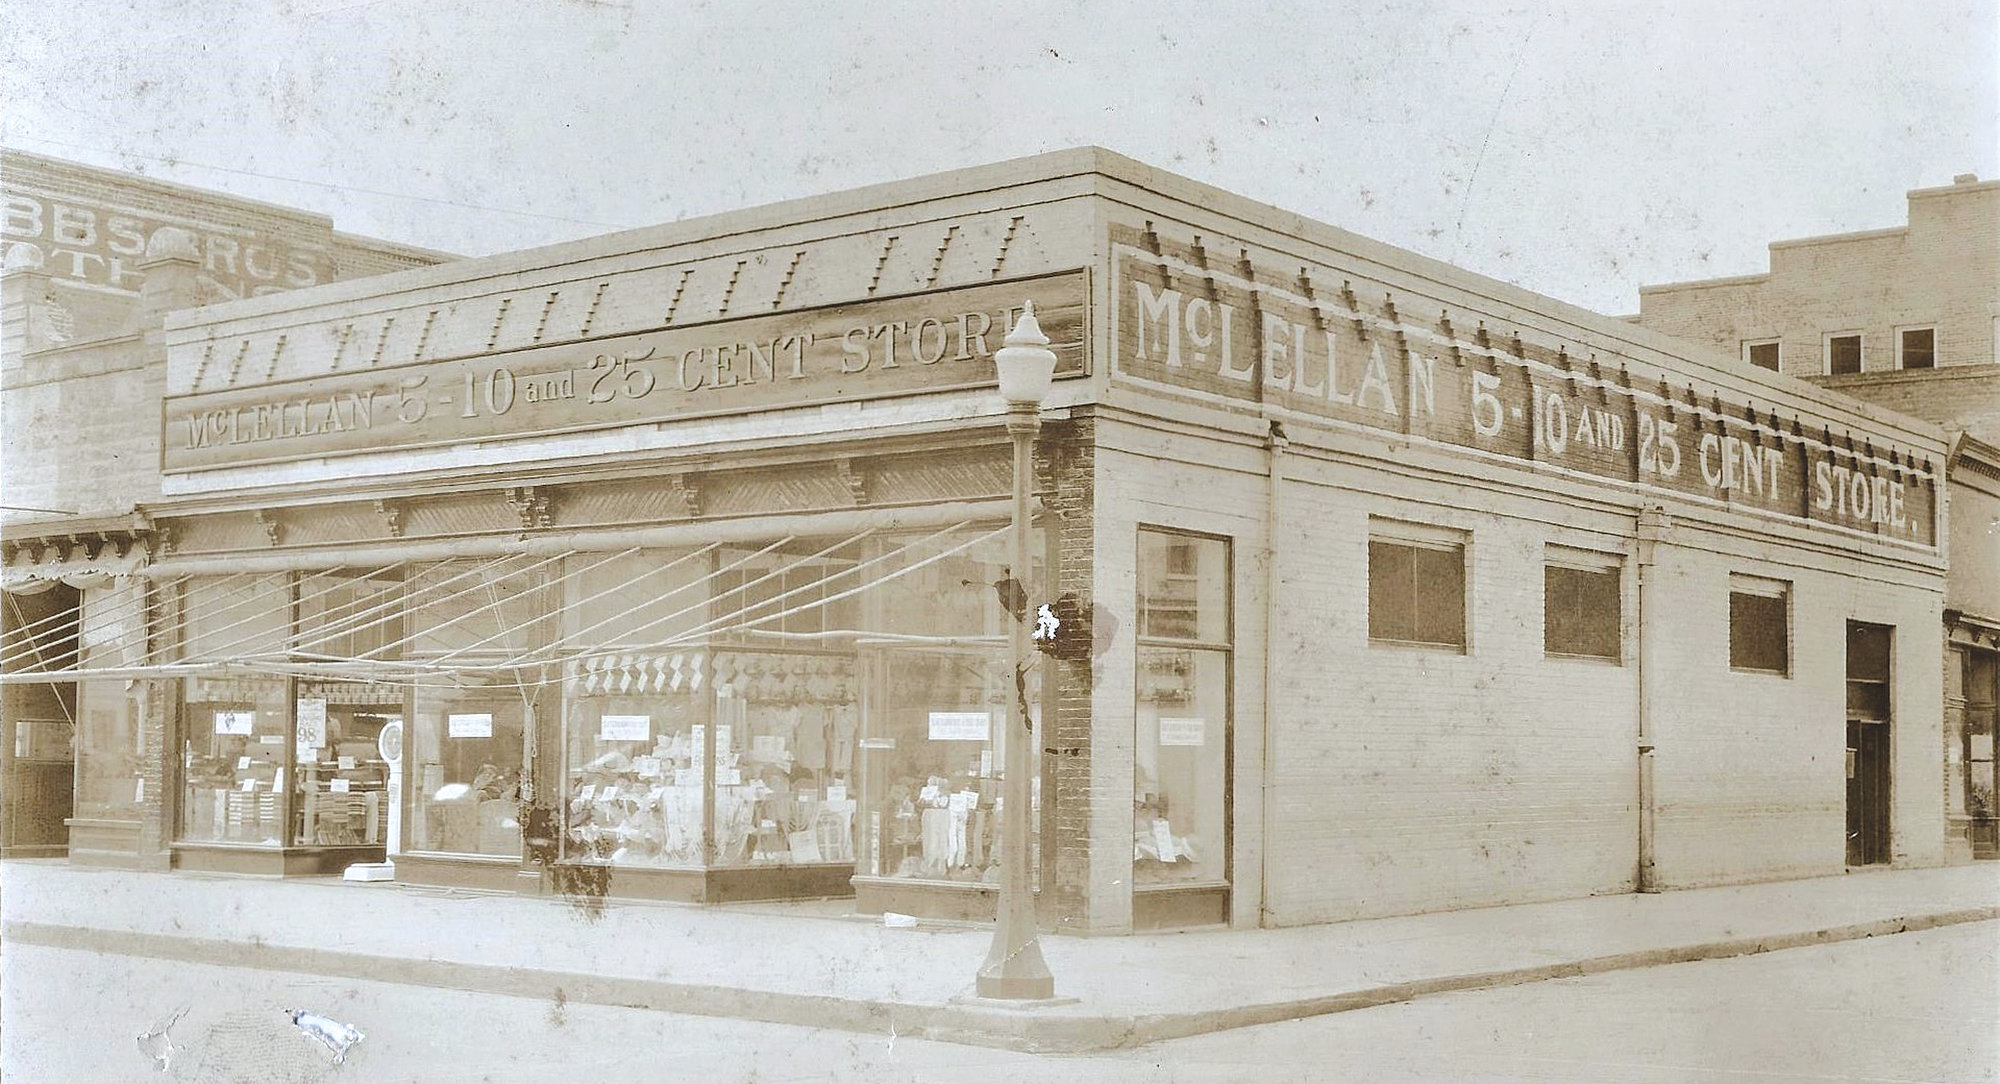 The original McLellan's 5-10-25 Cent Store is seen on the corner of Main and Liberty Streets in the 1930s.